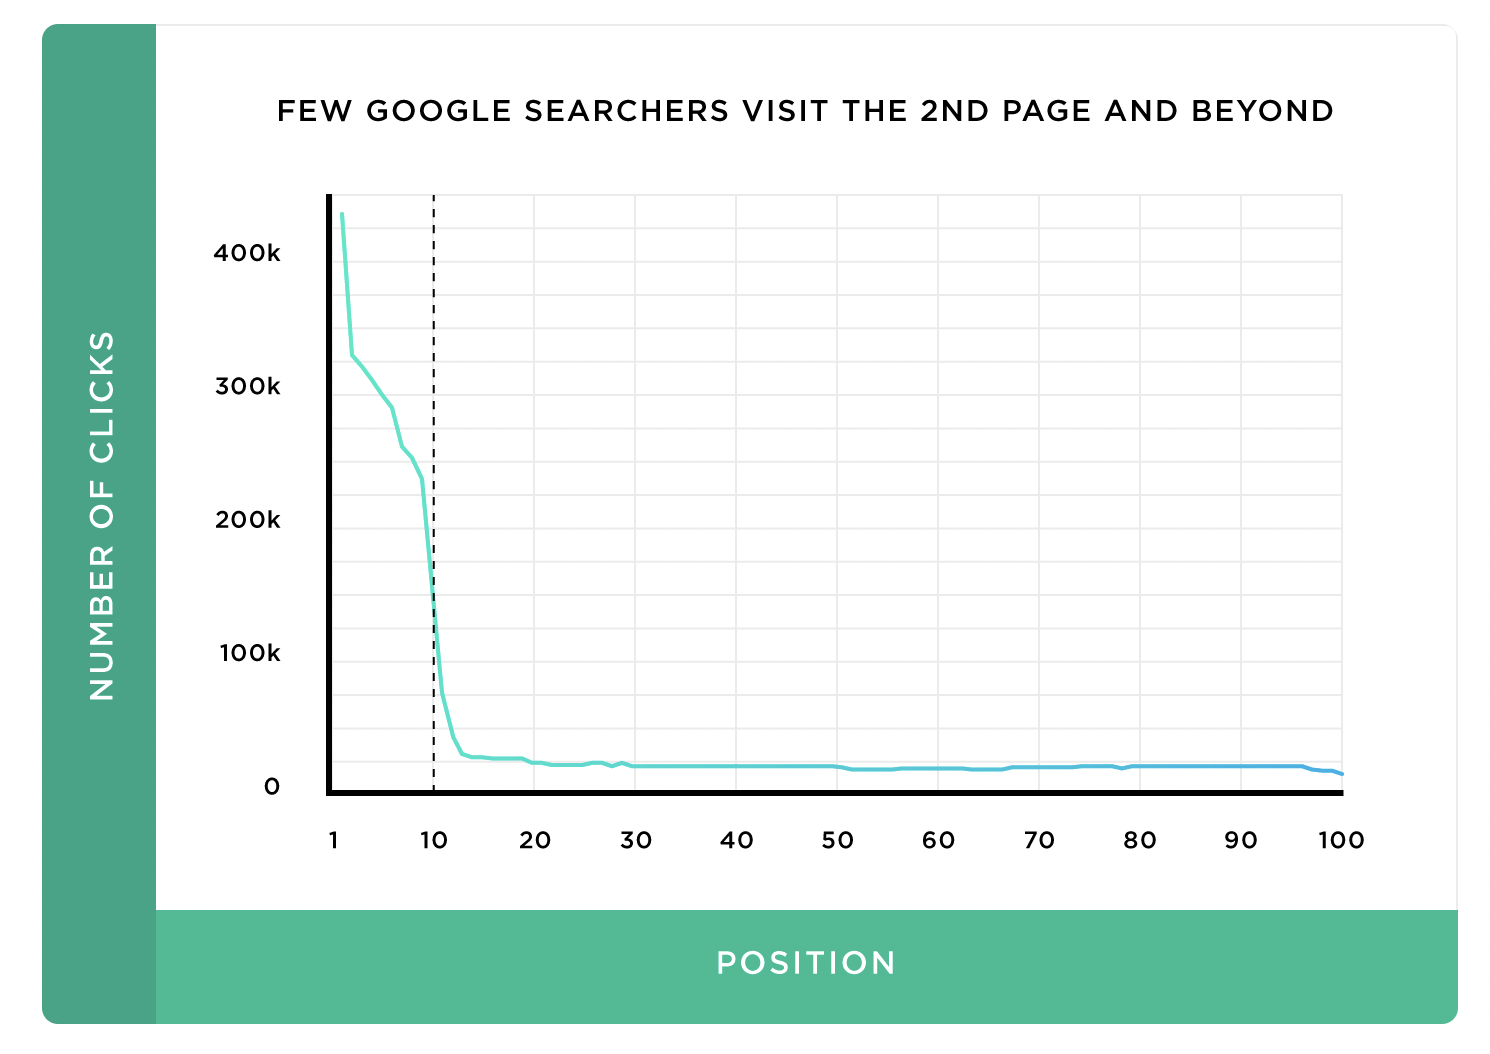 Less than 1% of Google searchers click on page two links